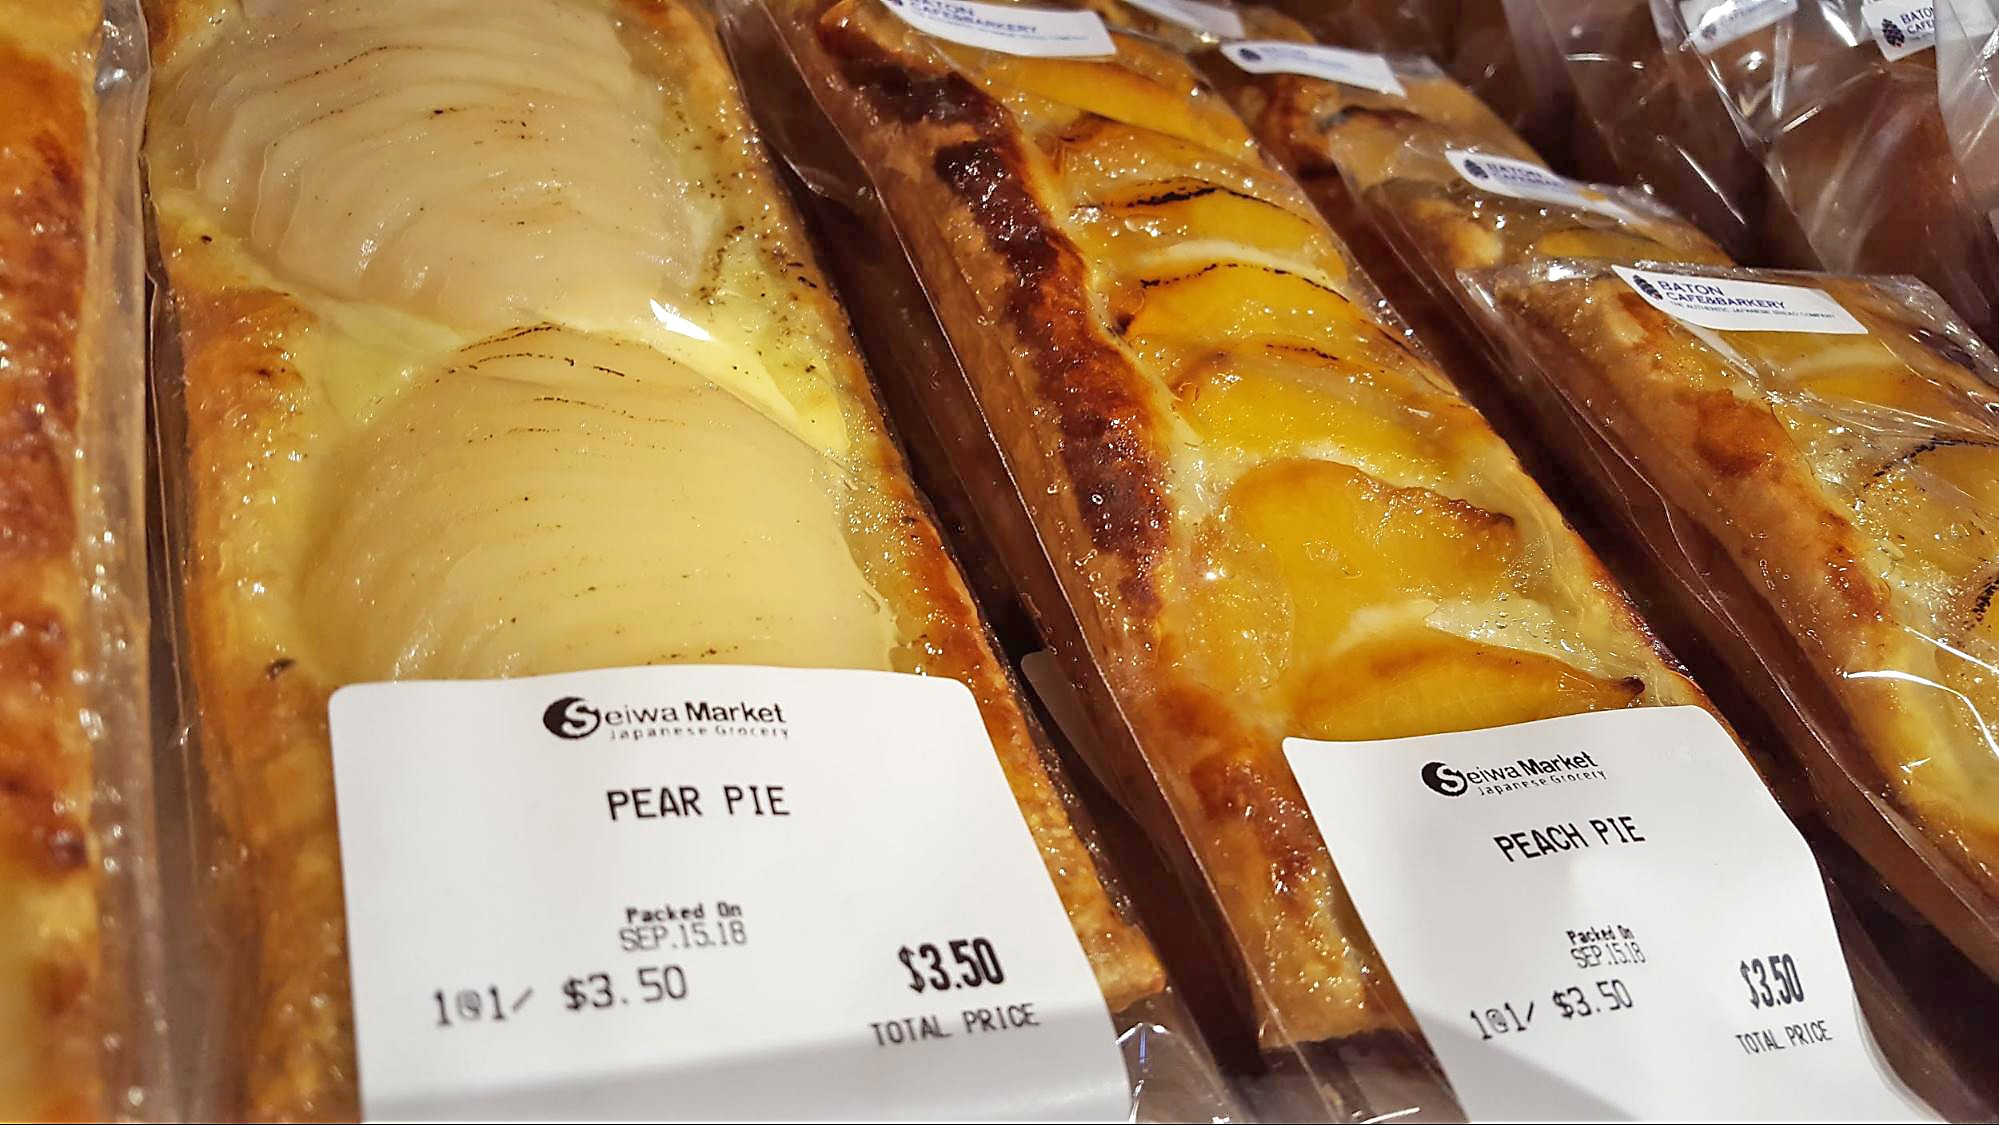 Pear and peach slab pies at Seiwa market